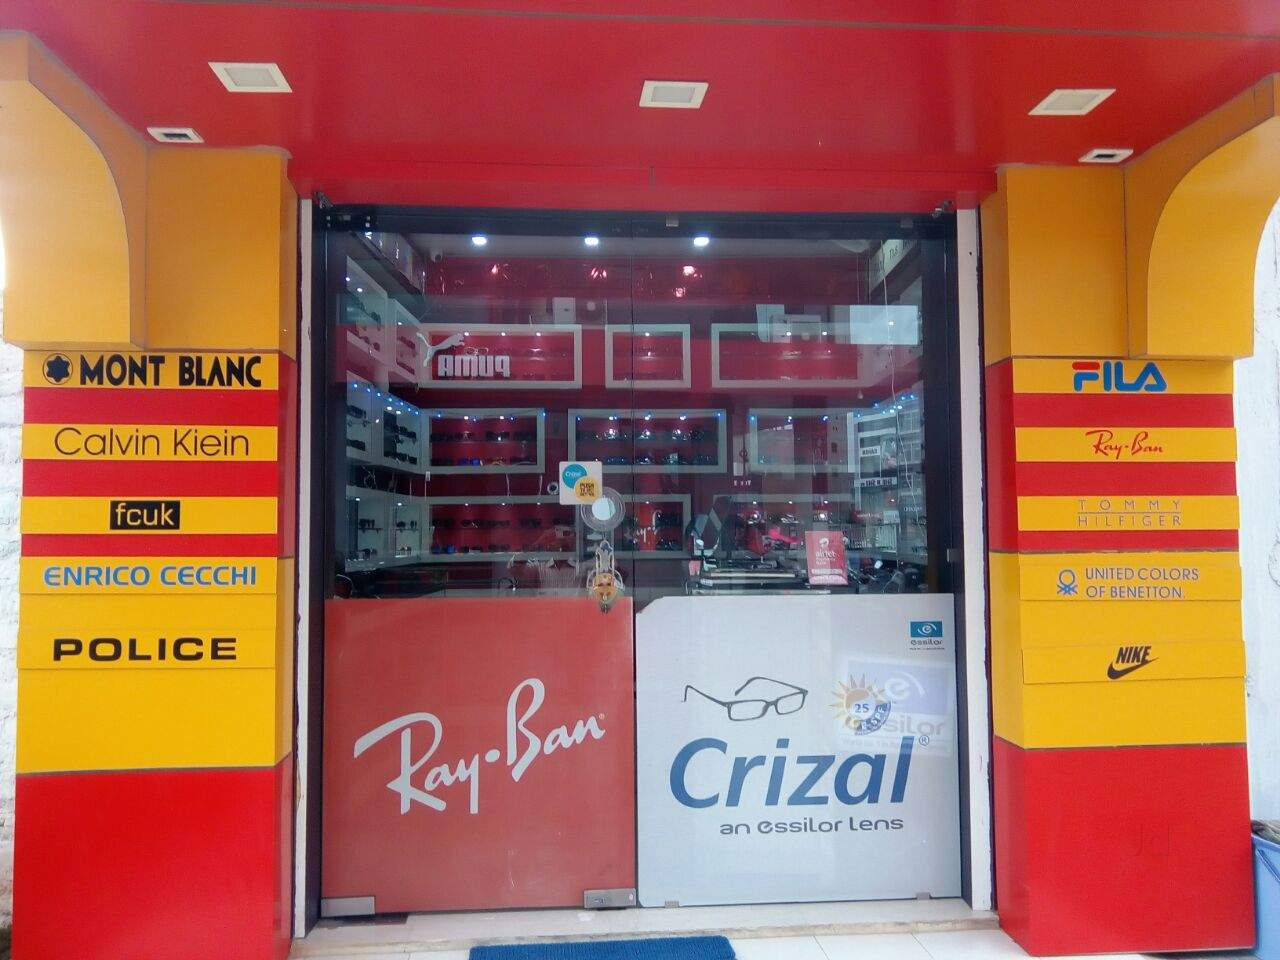 4488f959ef4 Ray Ban Store in Bikaner - Justdial